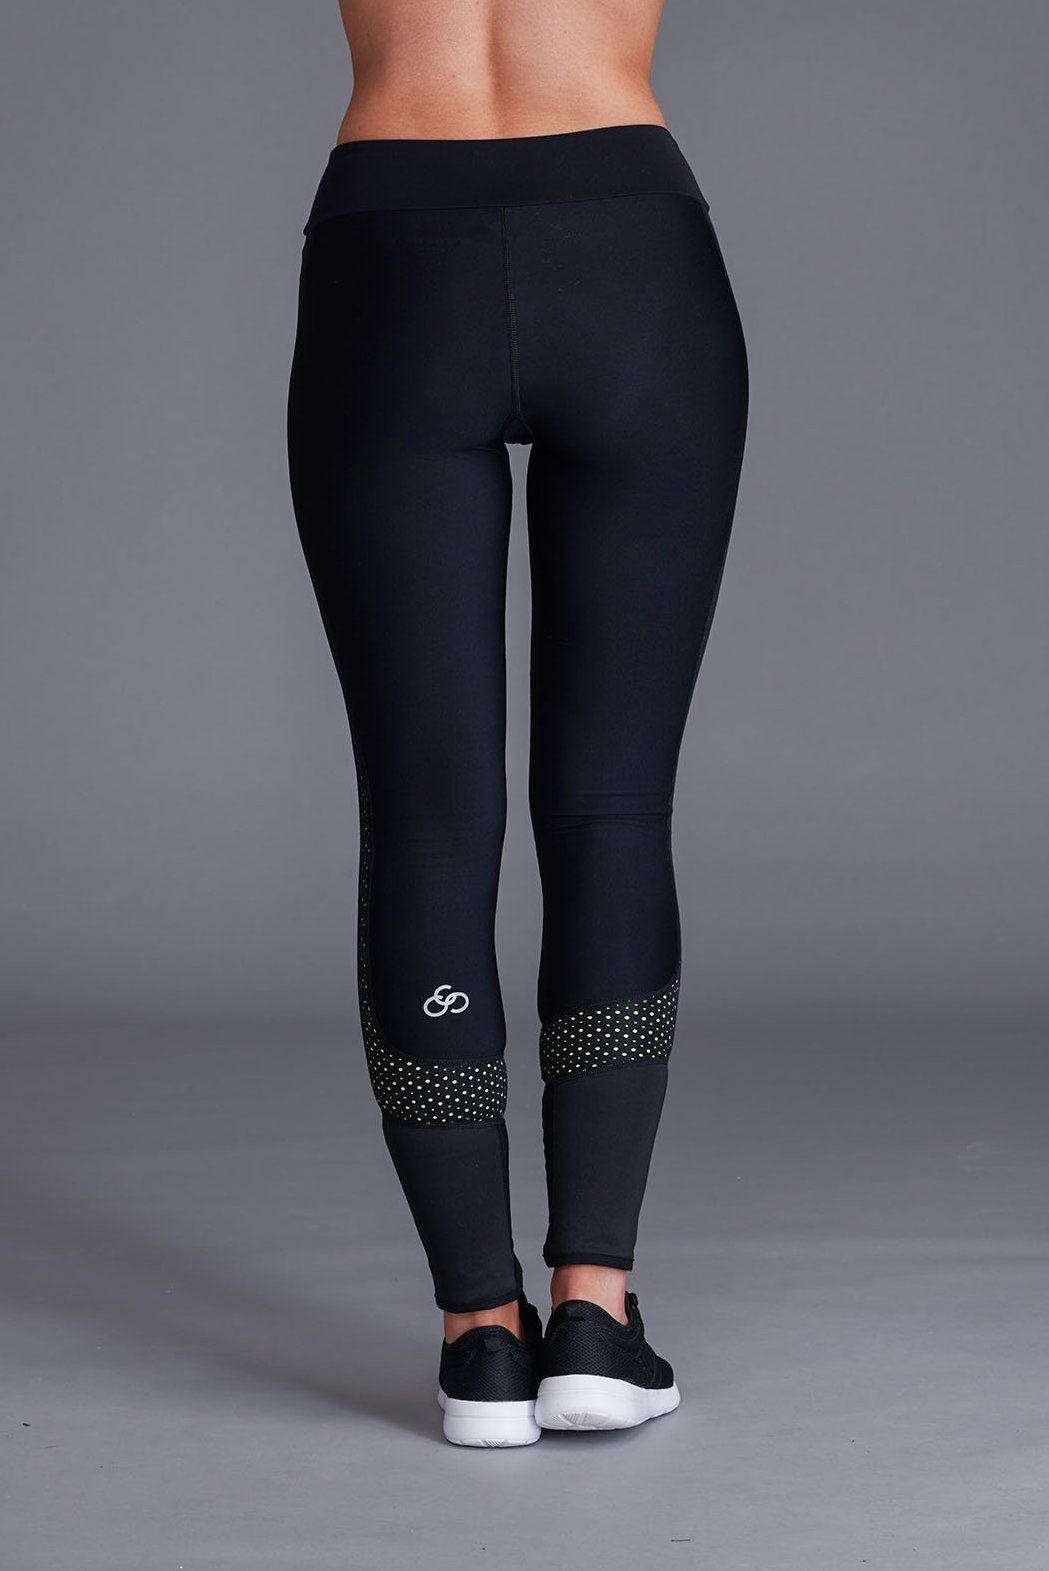 Passion Non-Slip Leggings-7